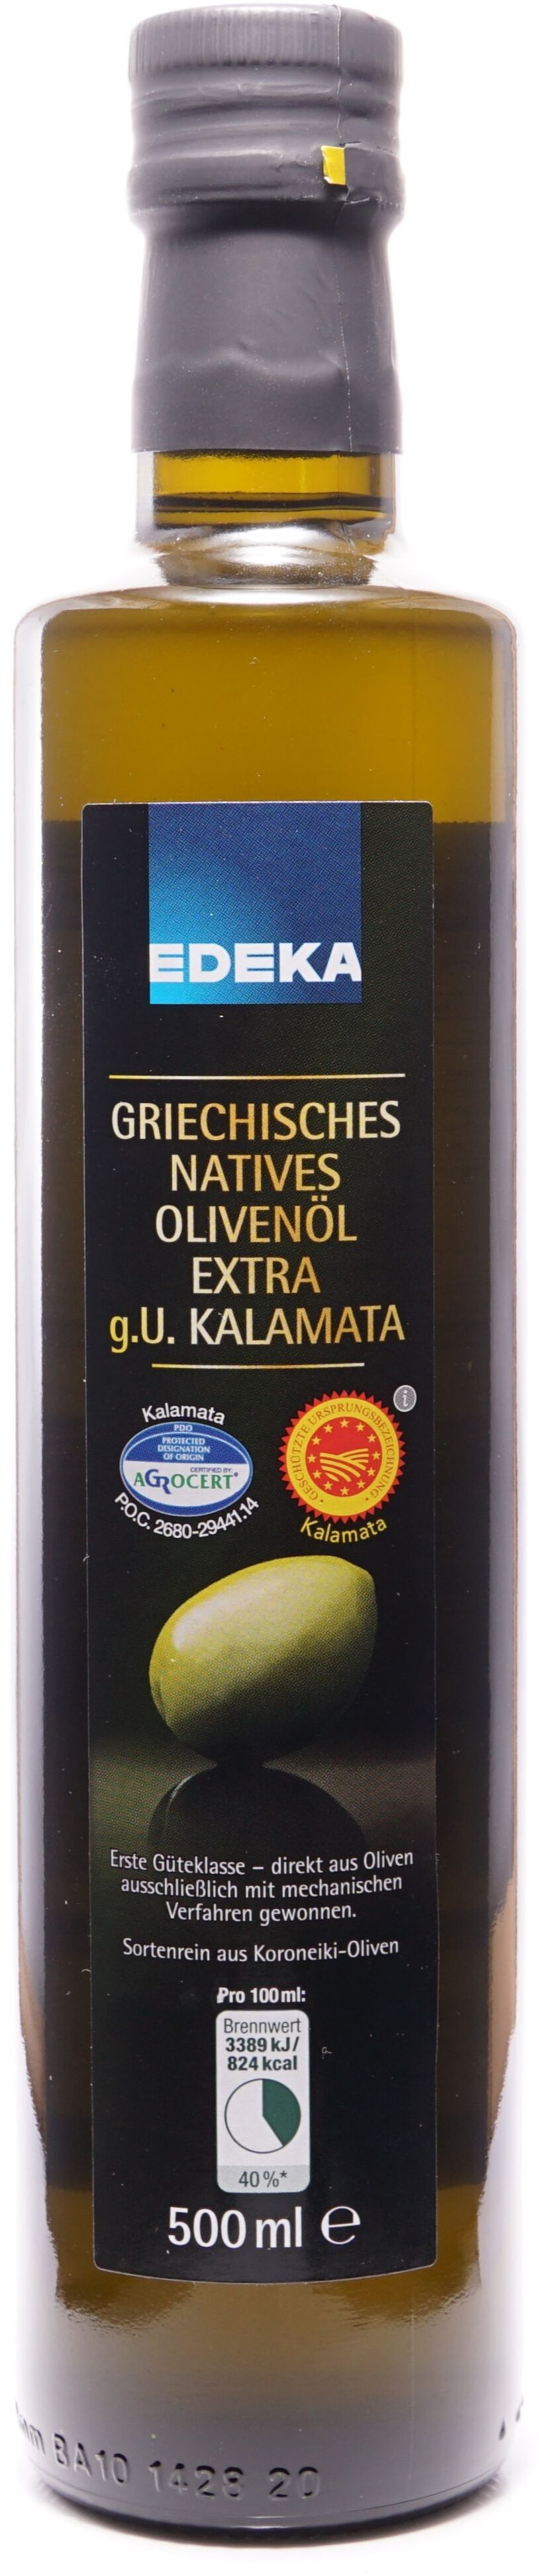 Griechisches Natives Olivenöl extra - Product - de